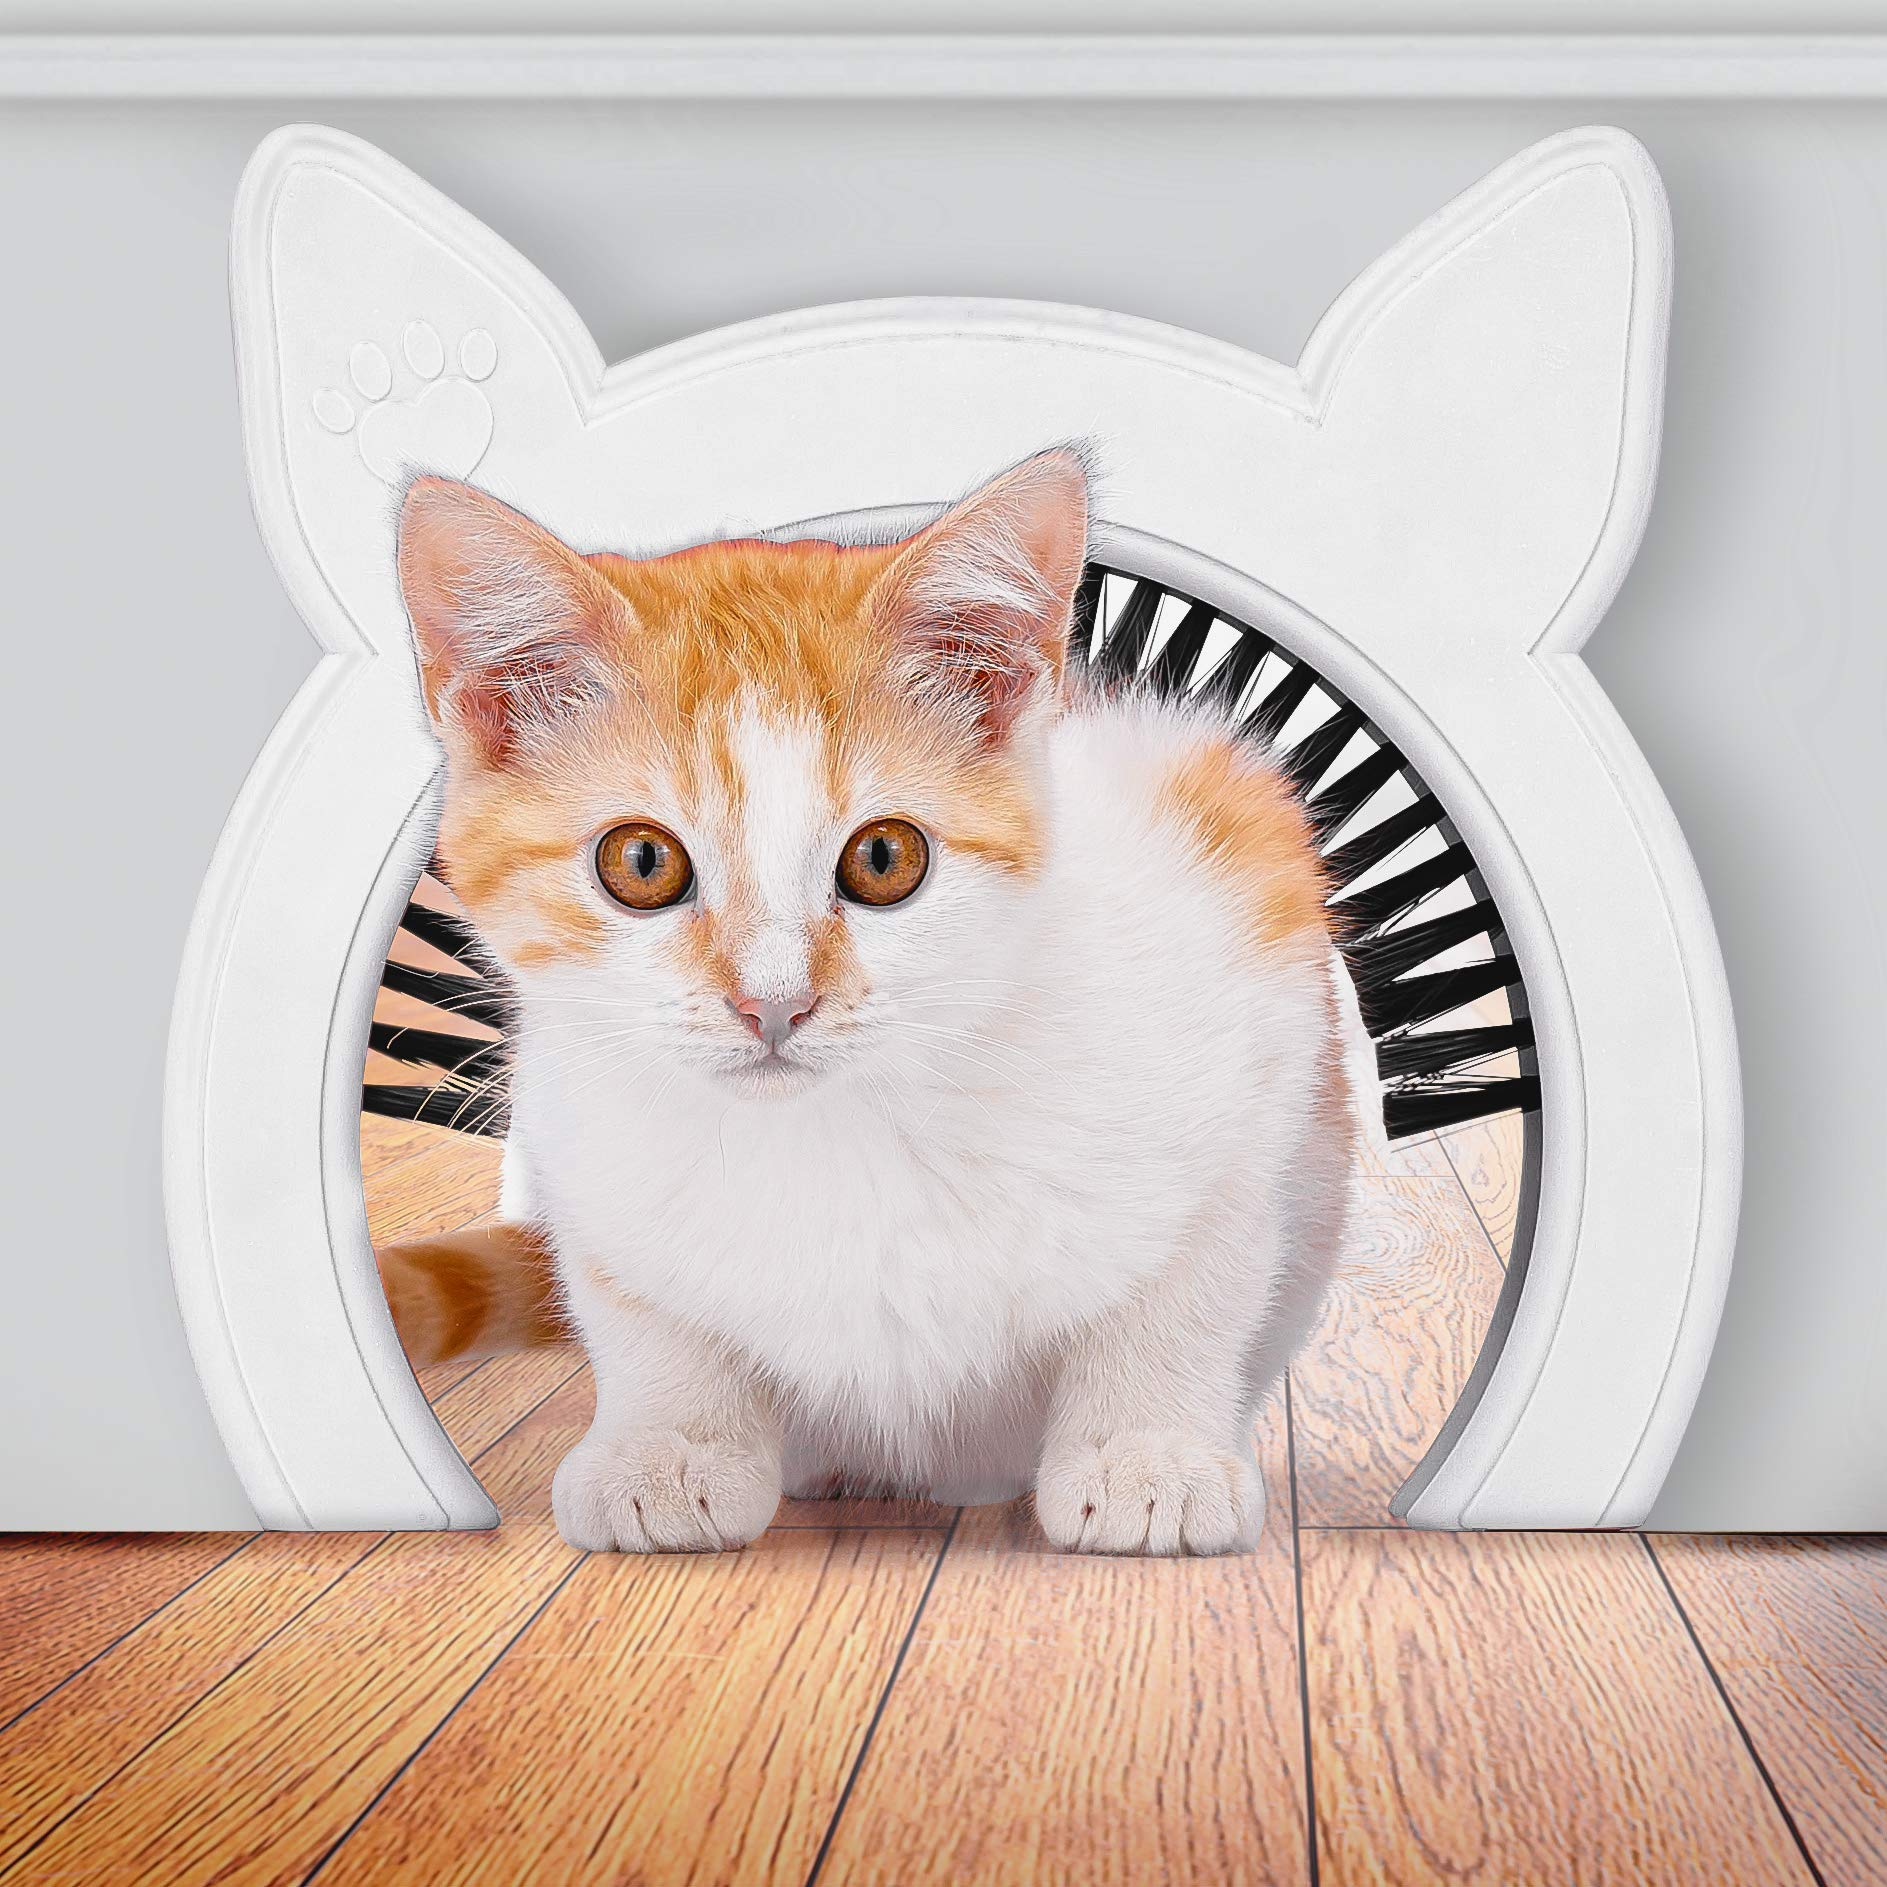 PAWSM Cat Door Removable Brush Grooms Kitty | Hides Litter Box from Kids and Dog |